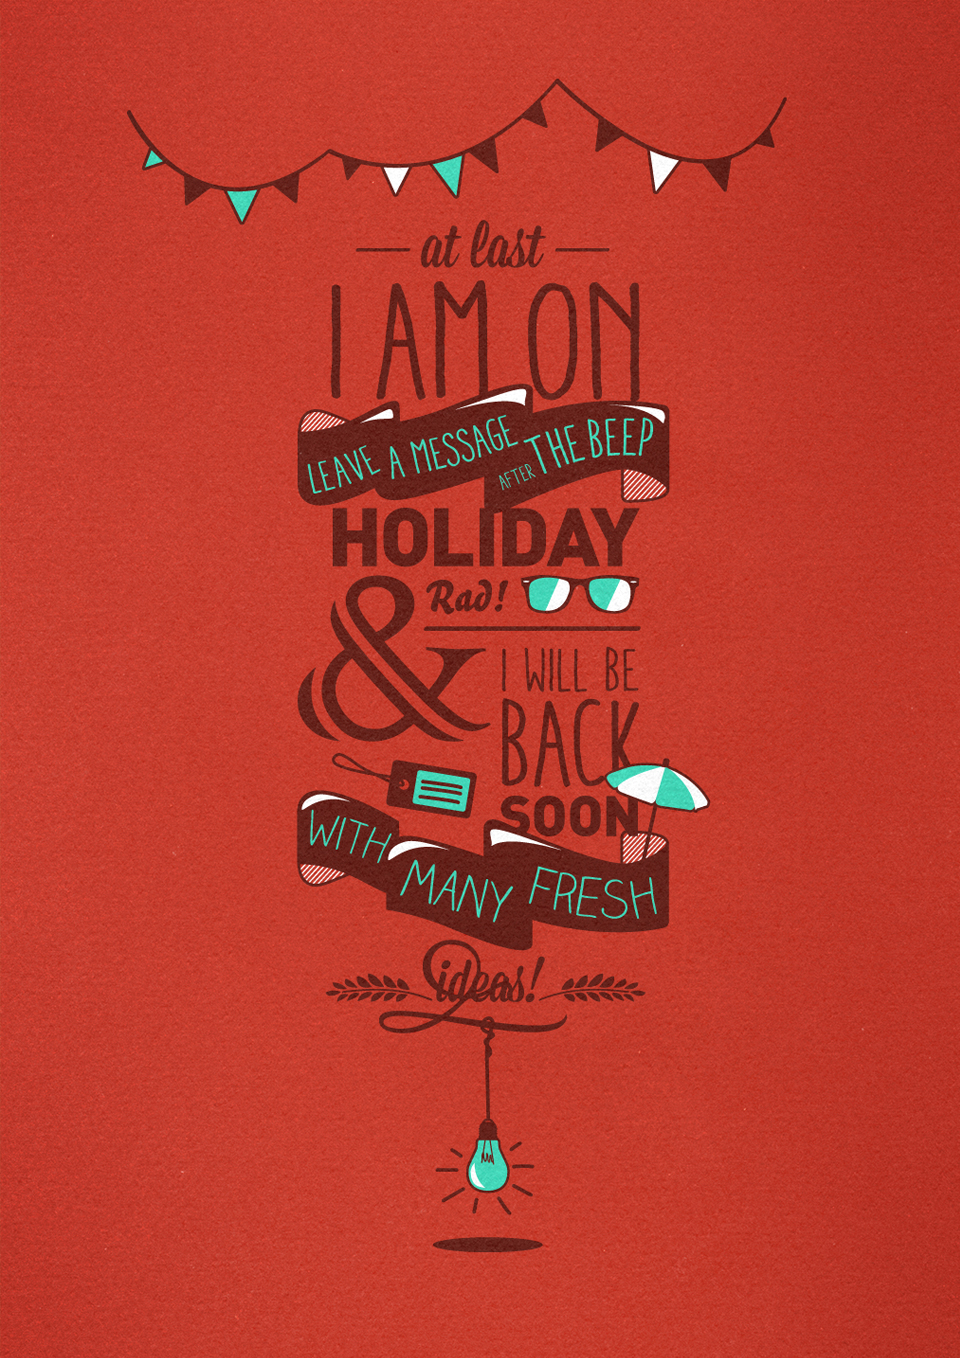 marie-brun-the-seventeenth-illustration-poster-fonts-holiday-red.jpg